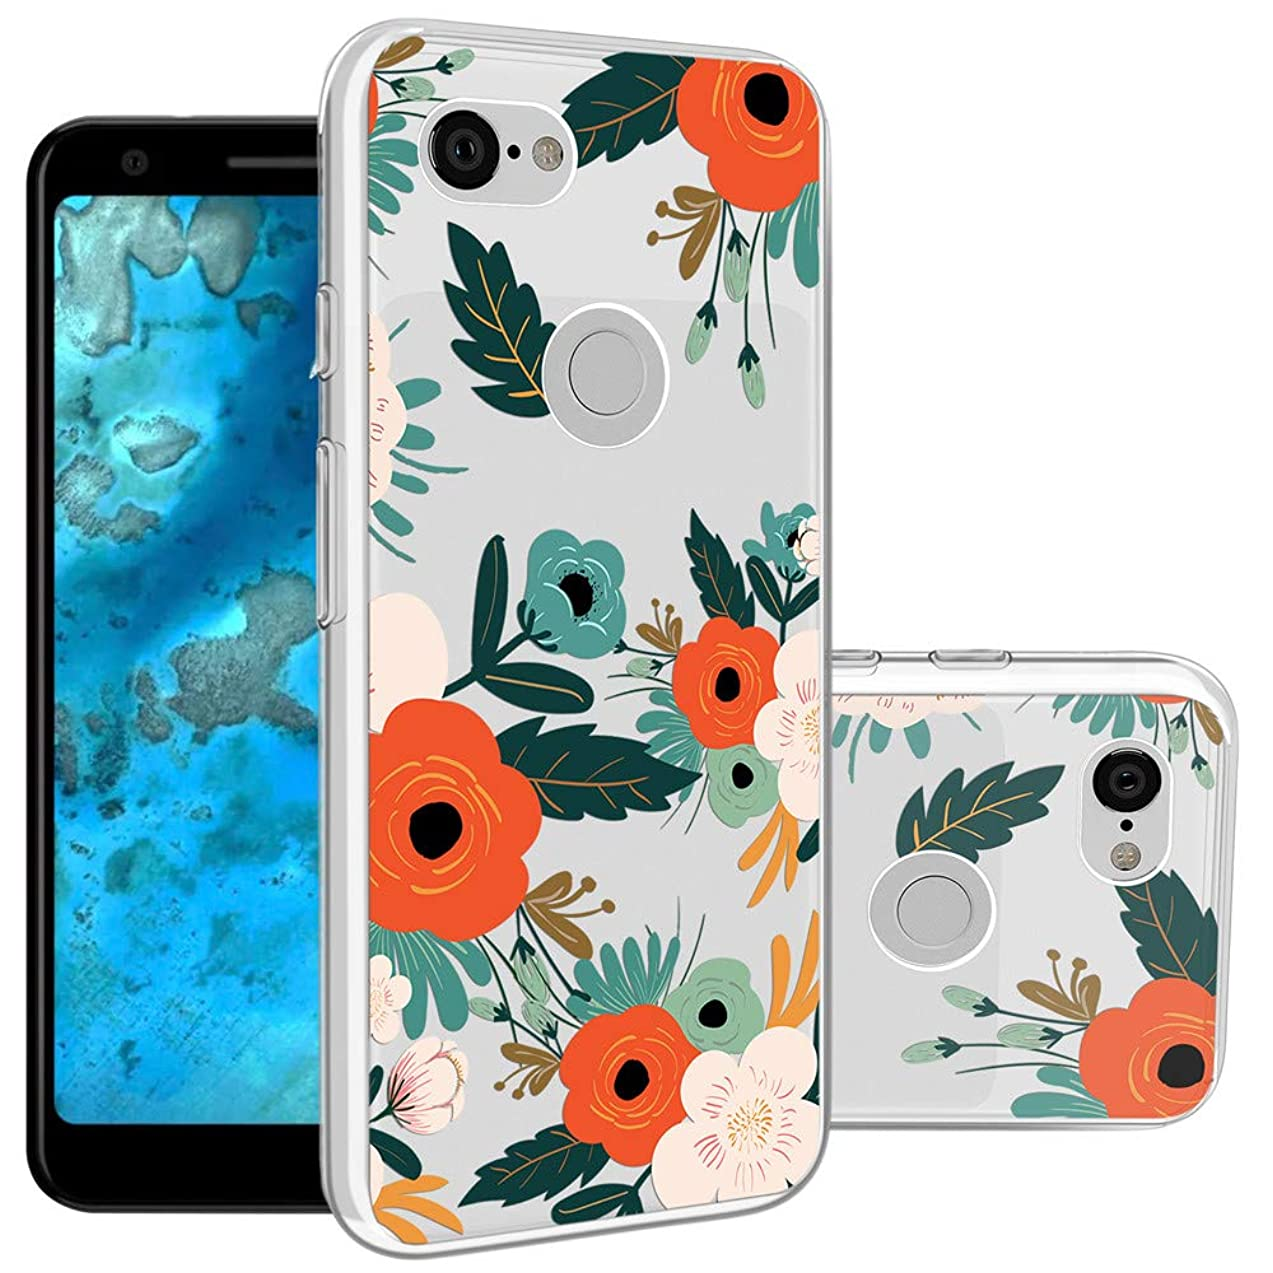 Topnow Google Pixel 3a Case, Shockproof Ultrathin Soft TPU Advanced Printing Pattern Cover Phone Case for Google Pixel 3a - Flowering